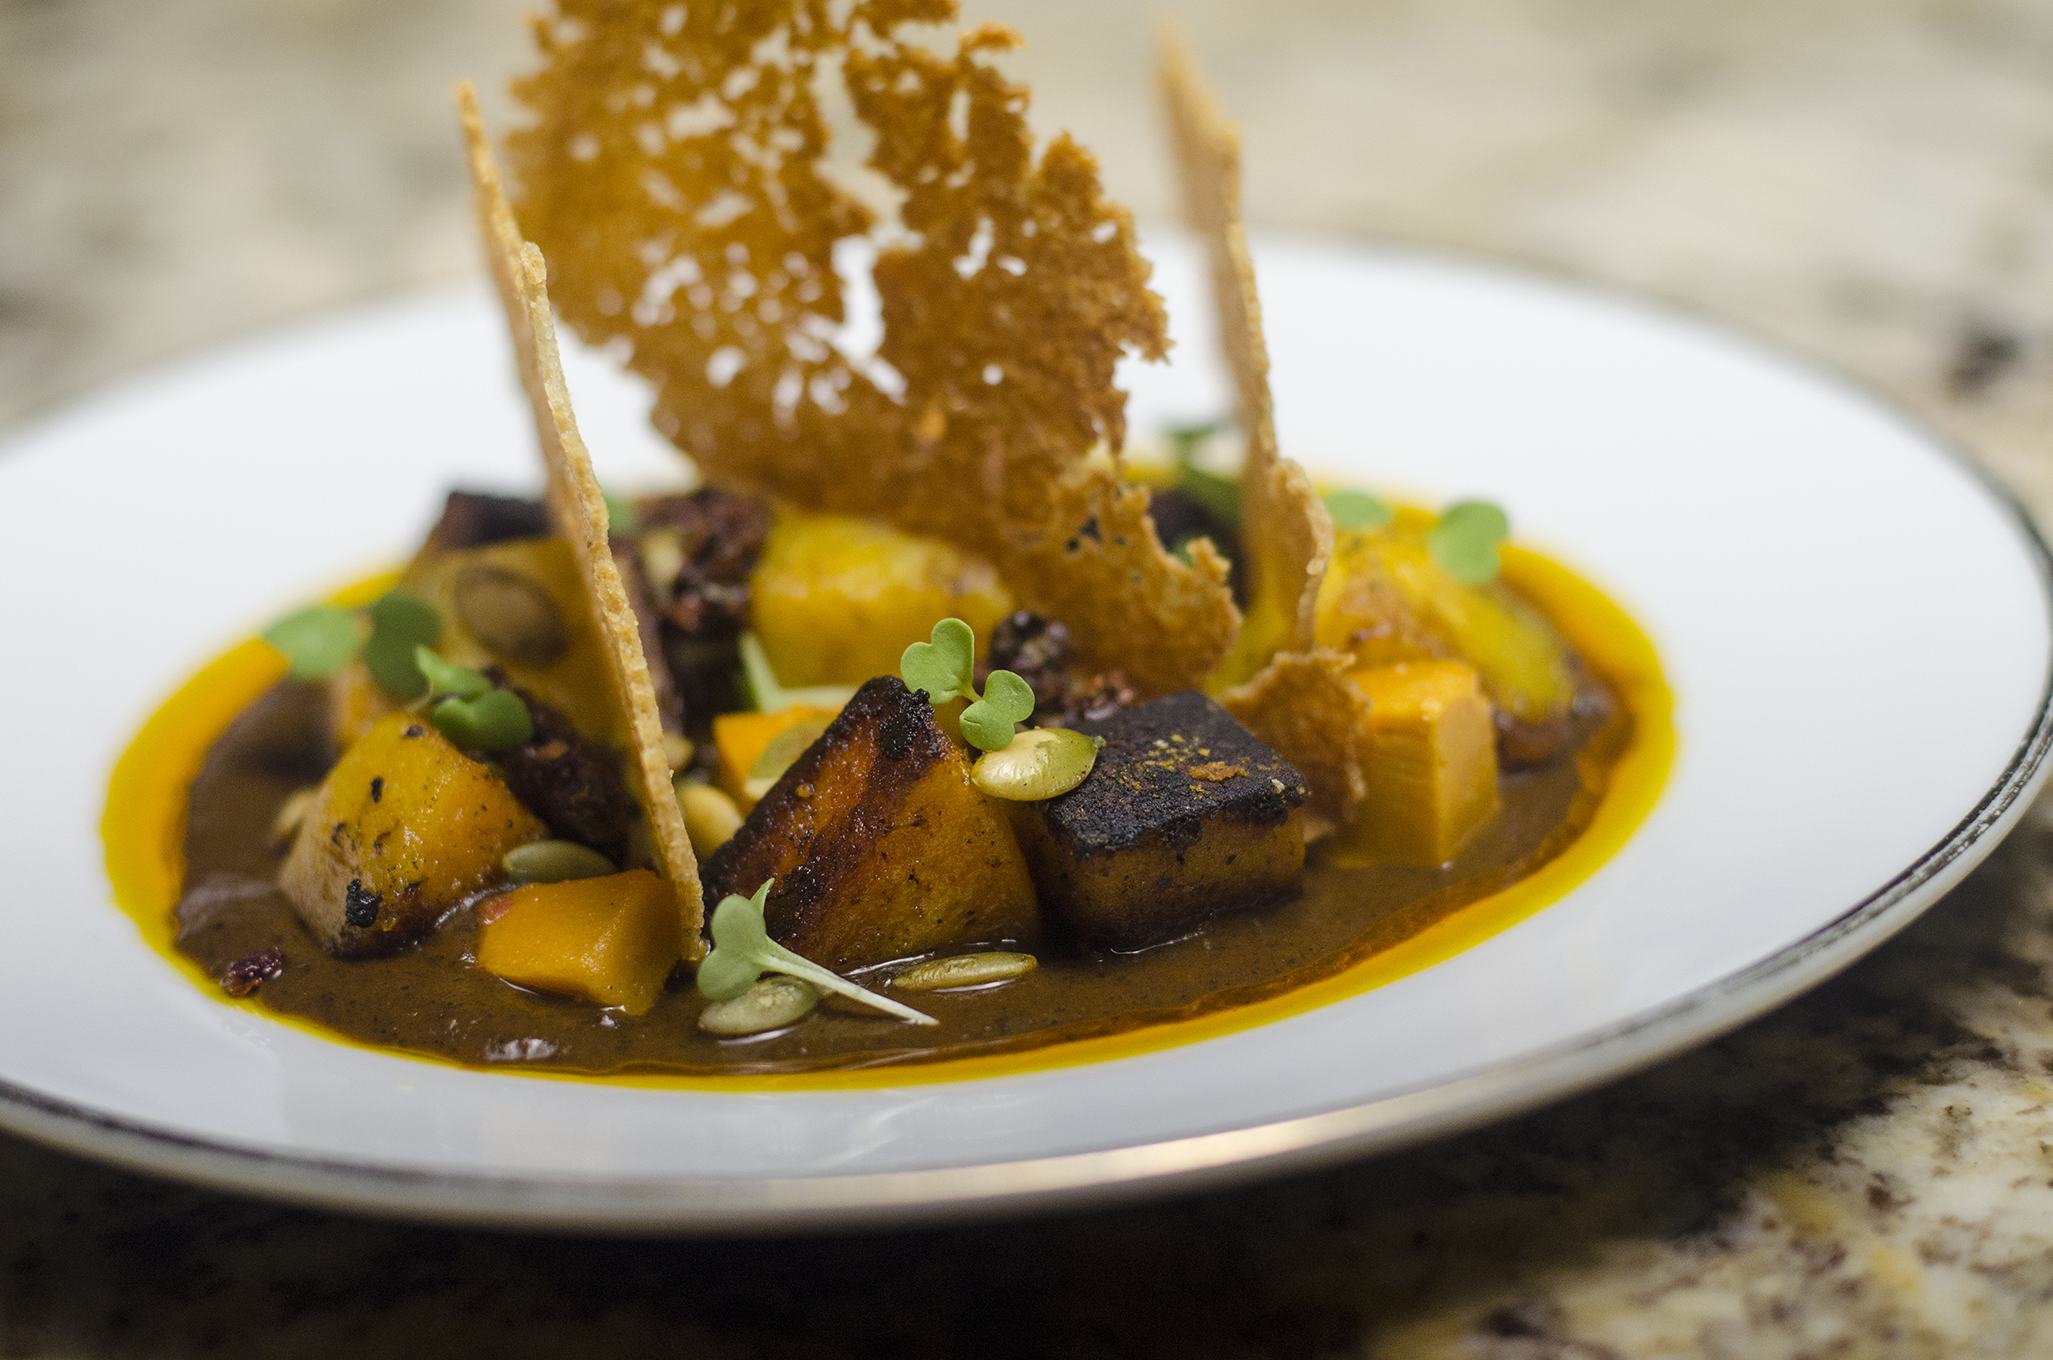 Roasted Winter Squash from F&B's new 2019 Fall menu.